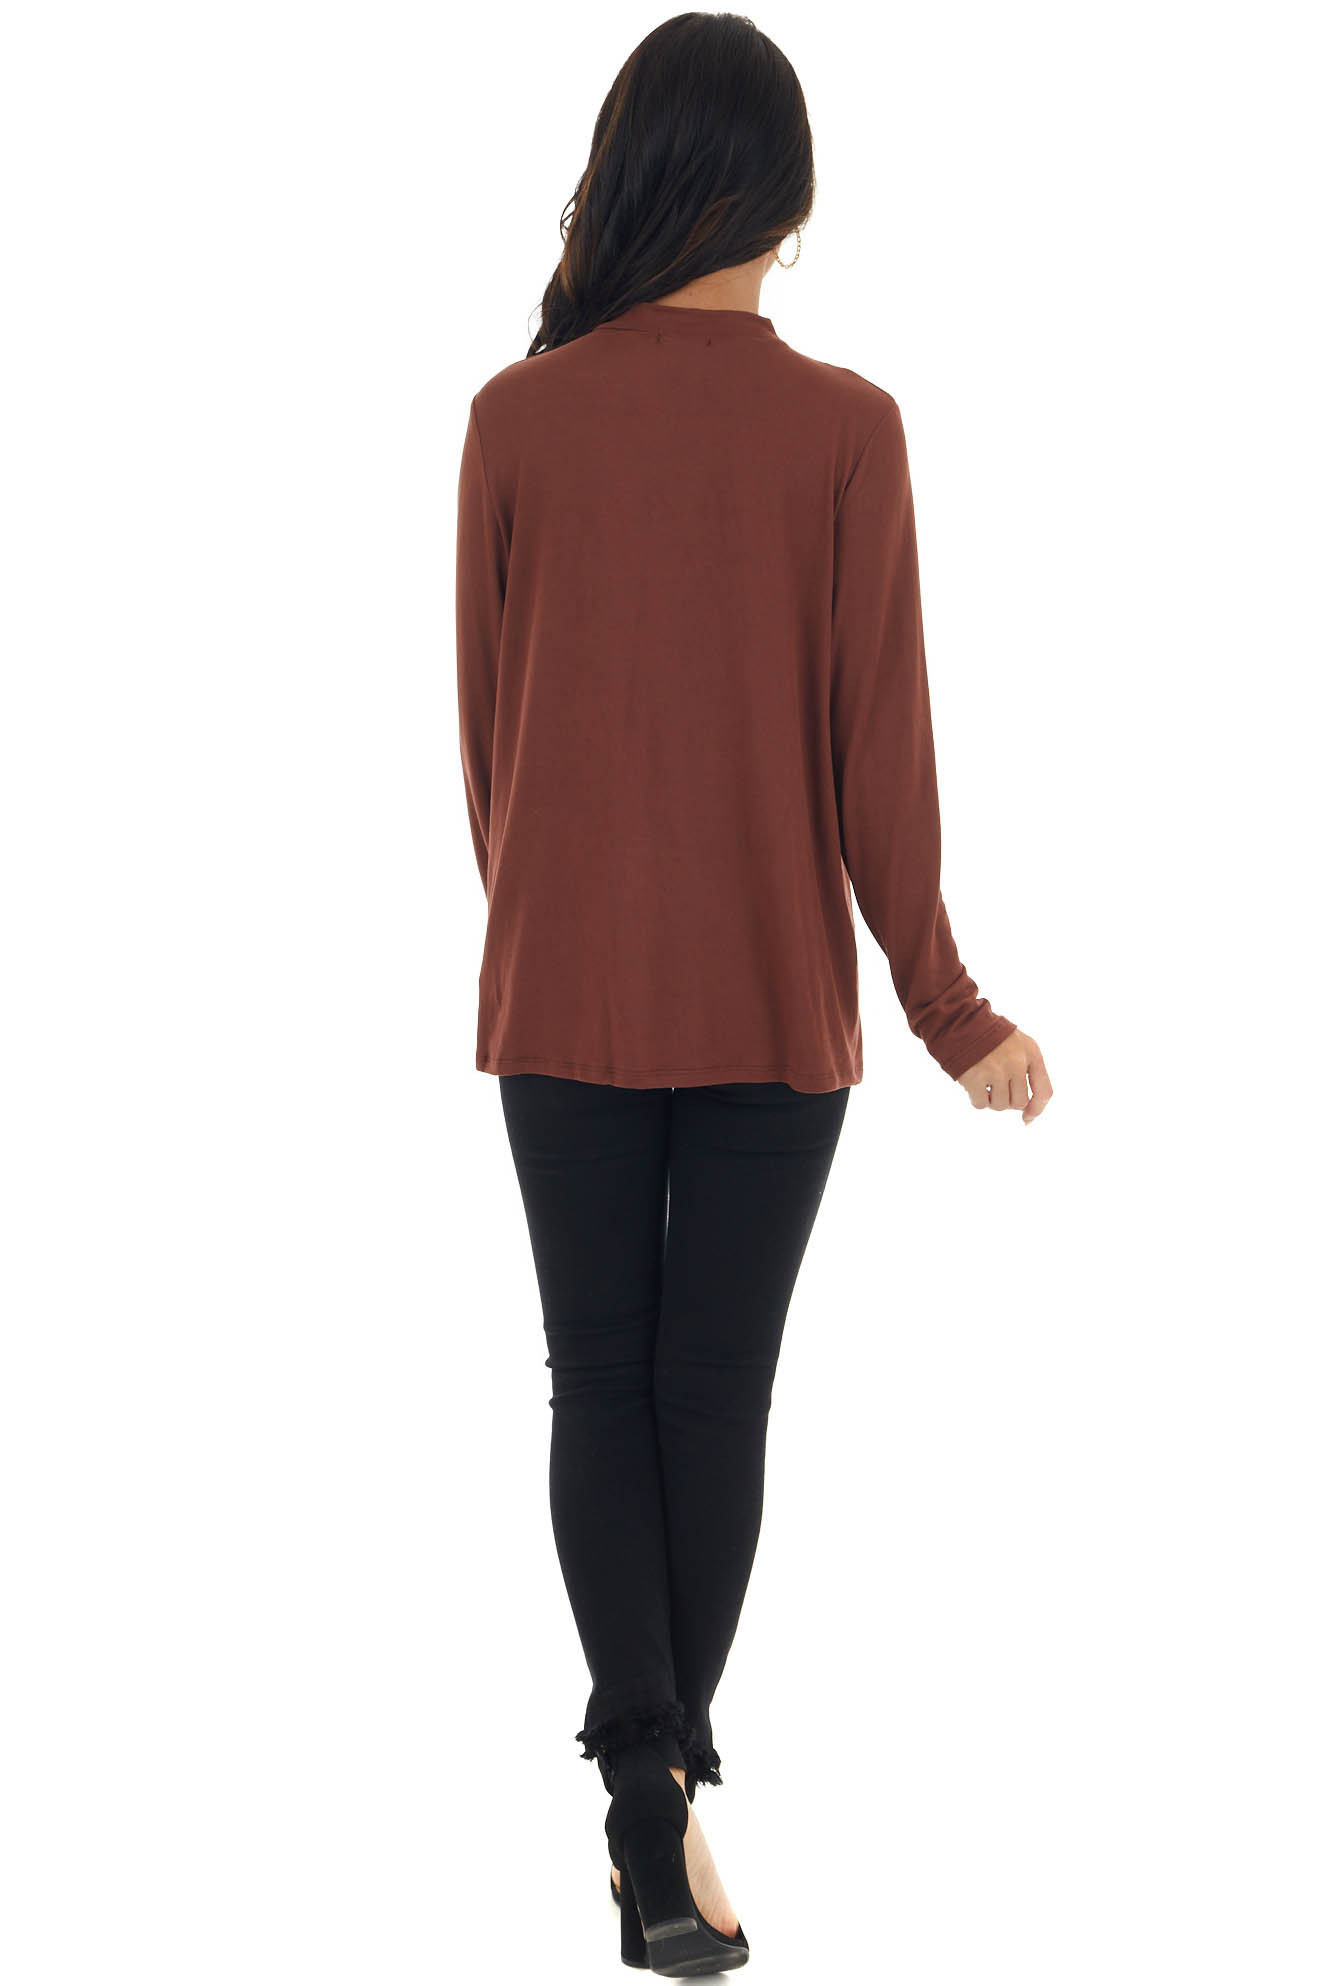 Marsala High Neck Knit Top with Chest Cut Out